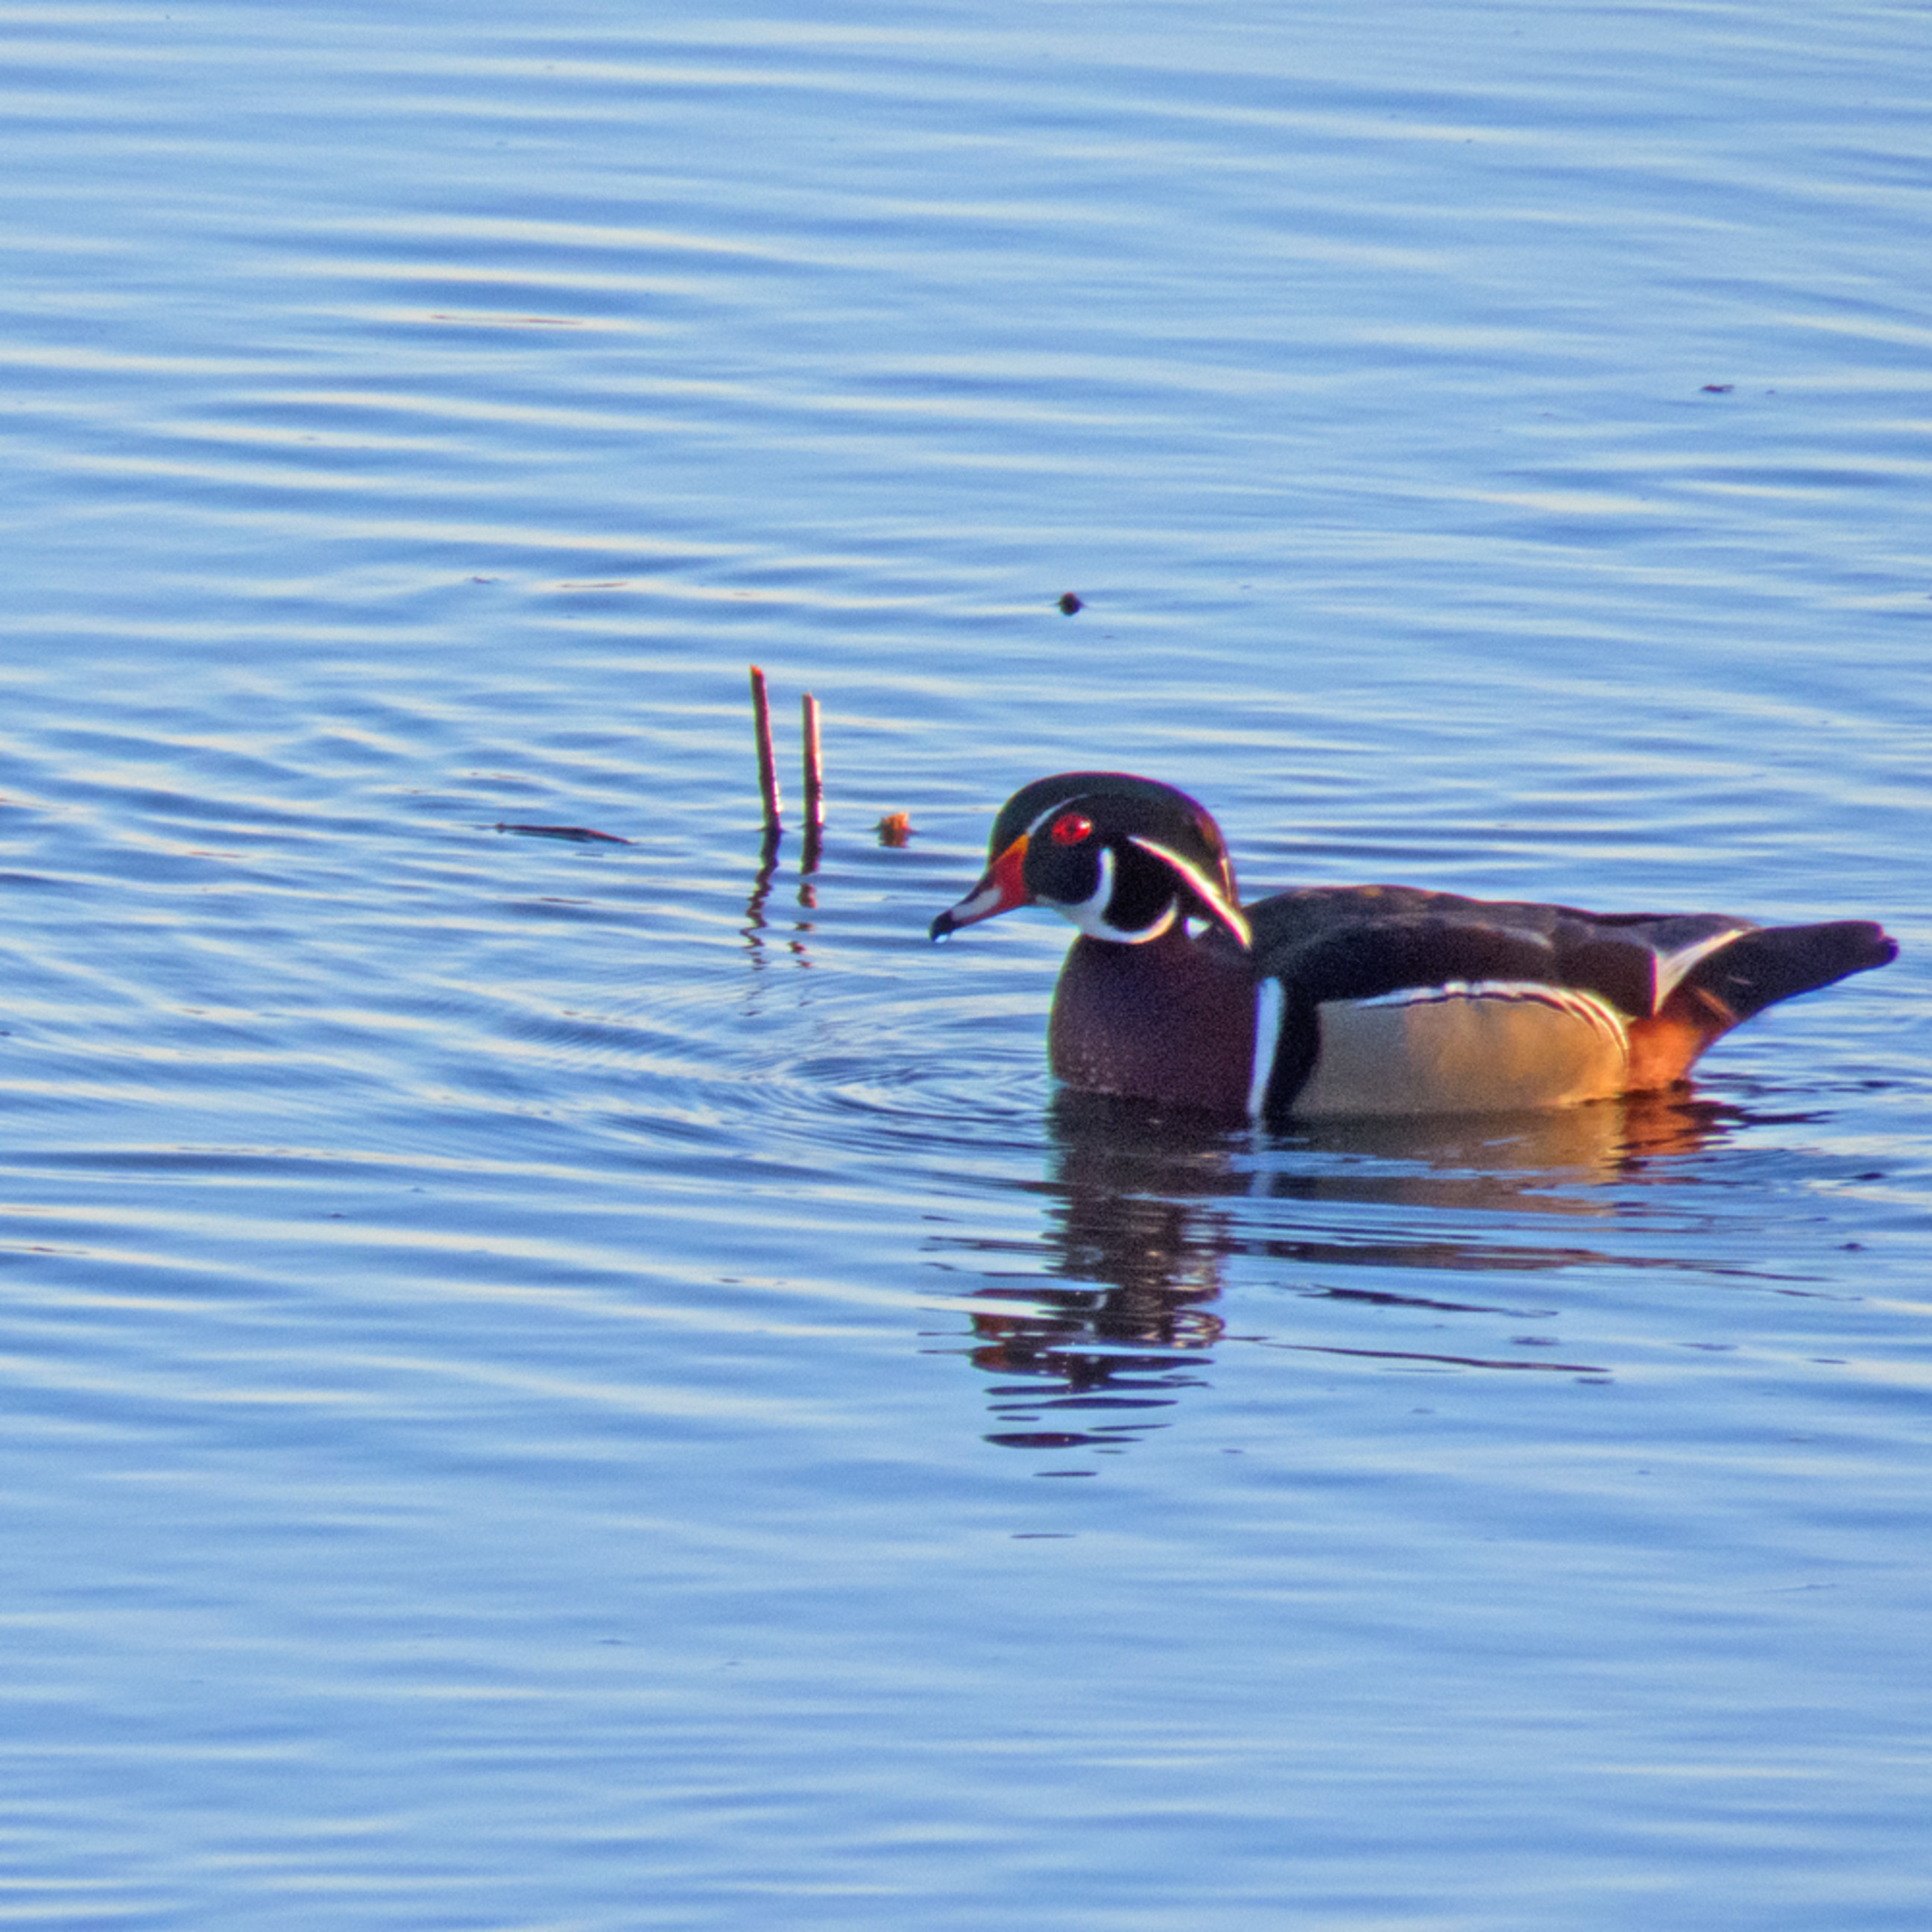 Male wood duck 2 si0toy